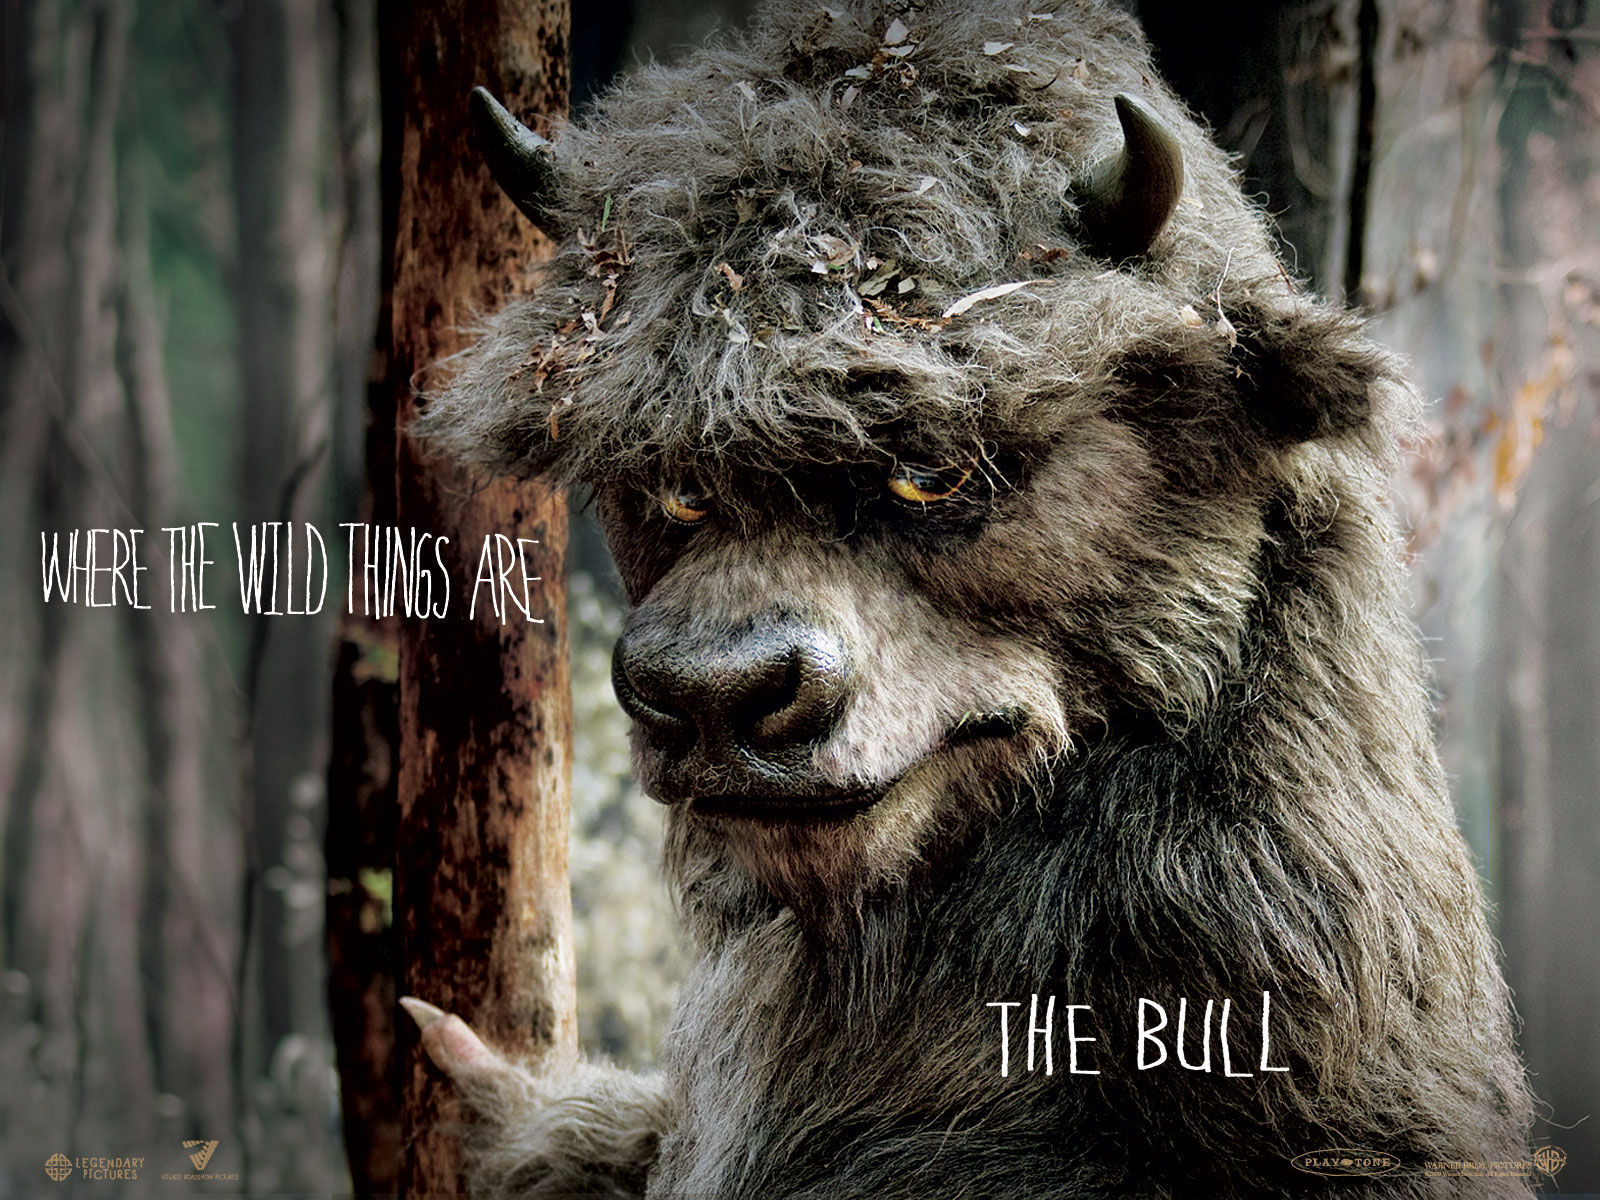 where the wild things are images the bull wallpaper photos